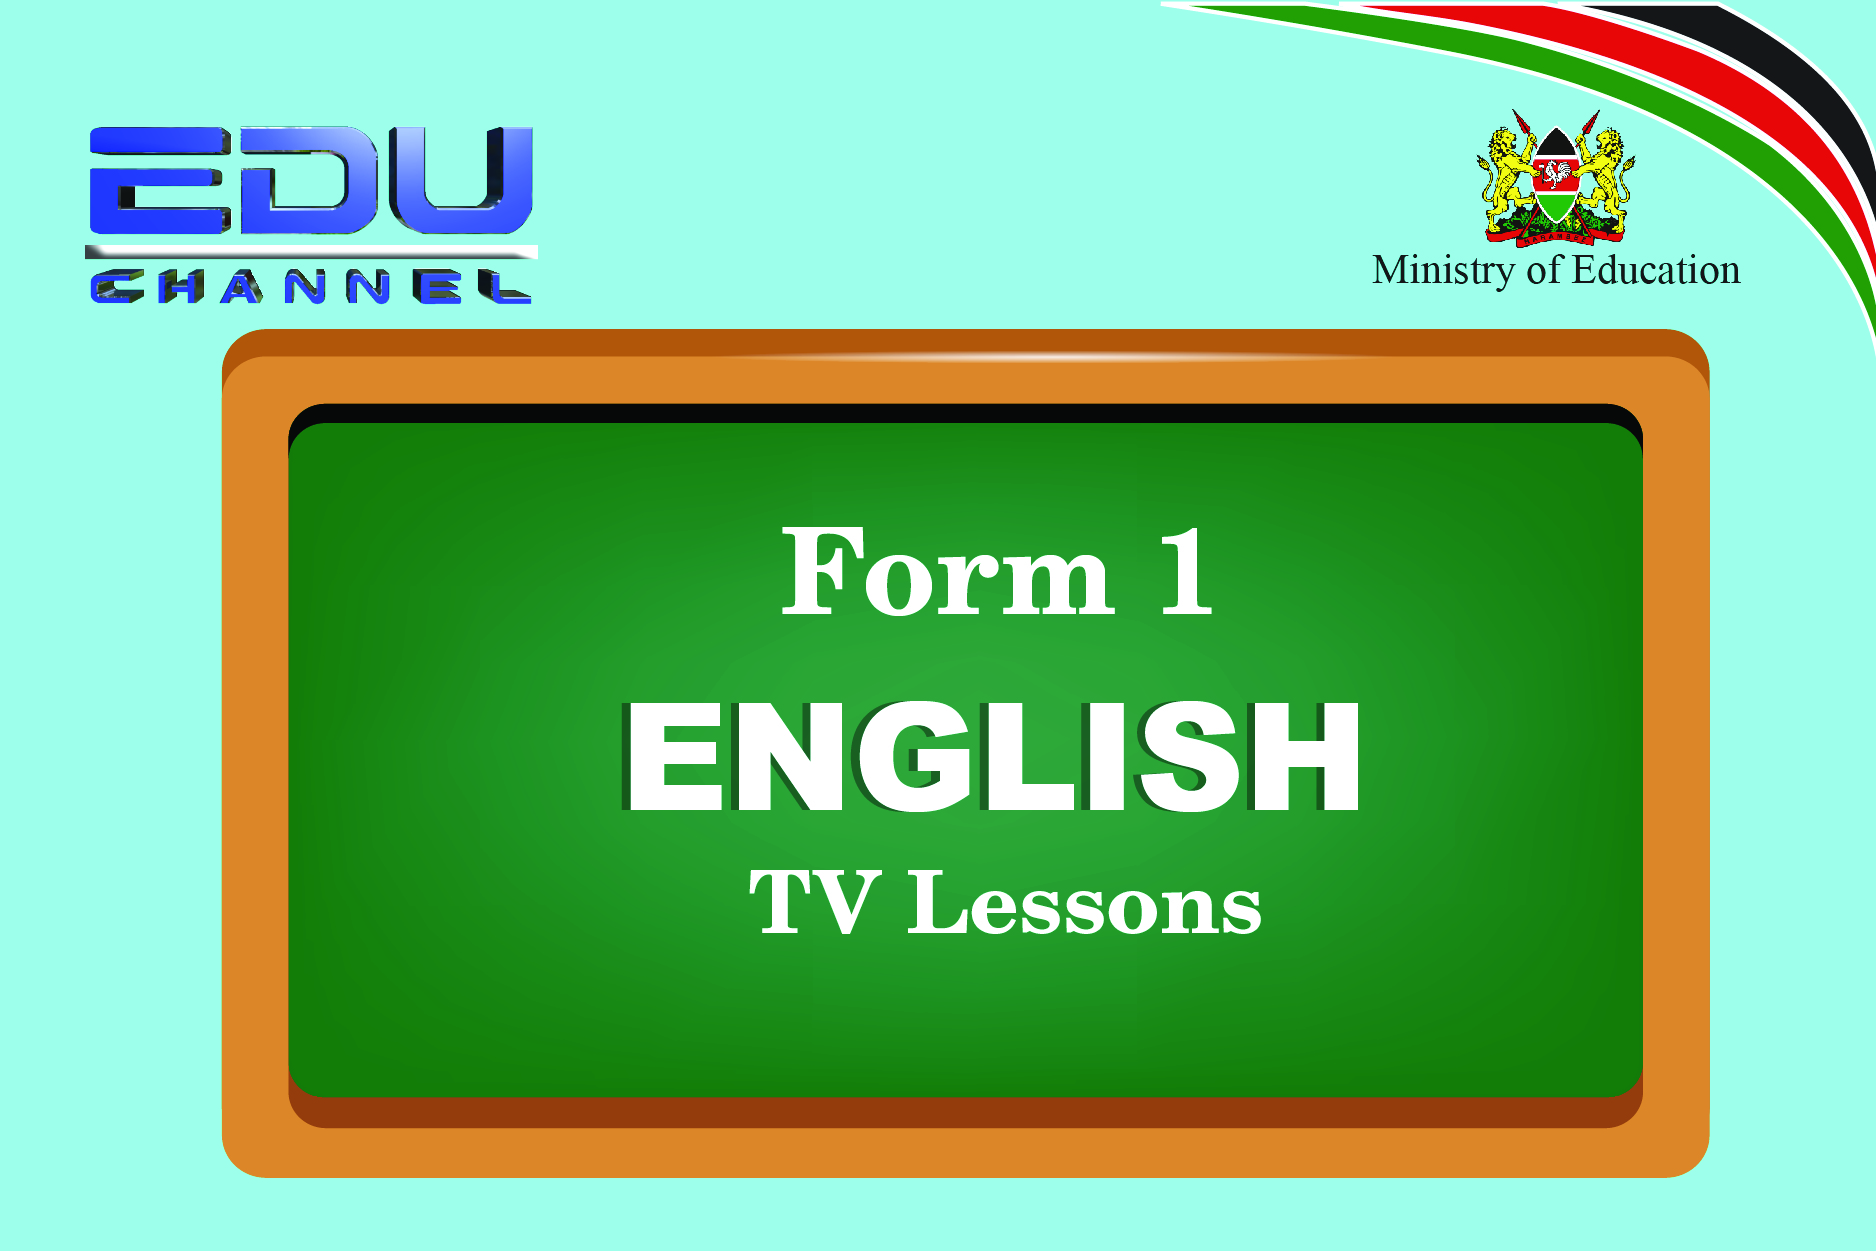 Form 1 English Lesson 1: Proper Nouns and Common nouns